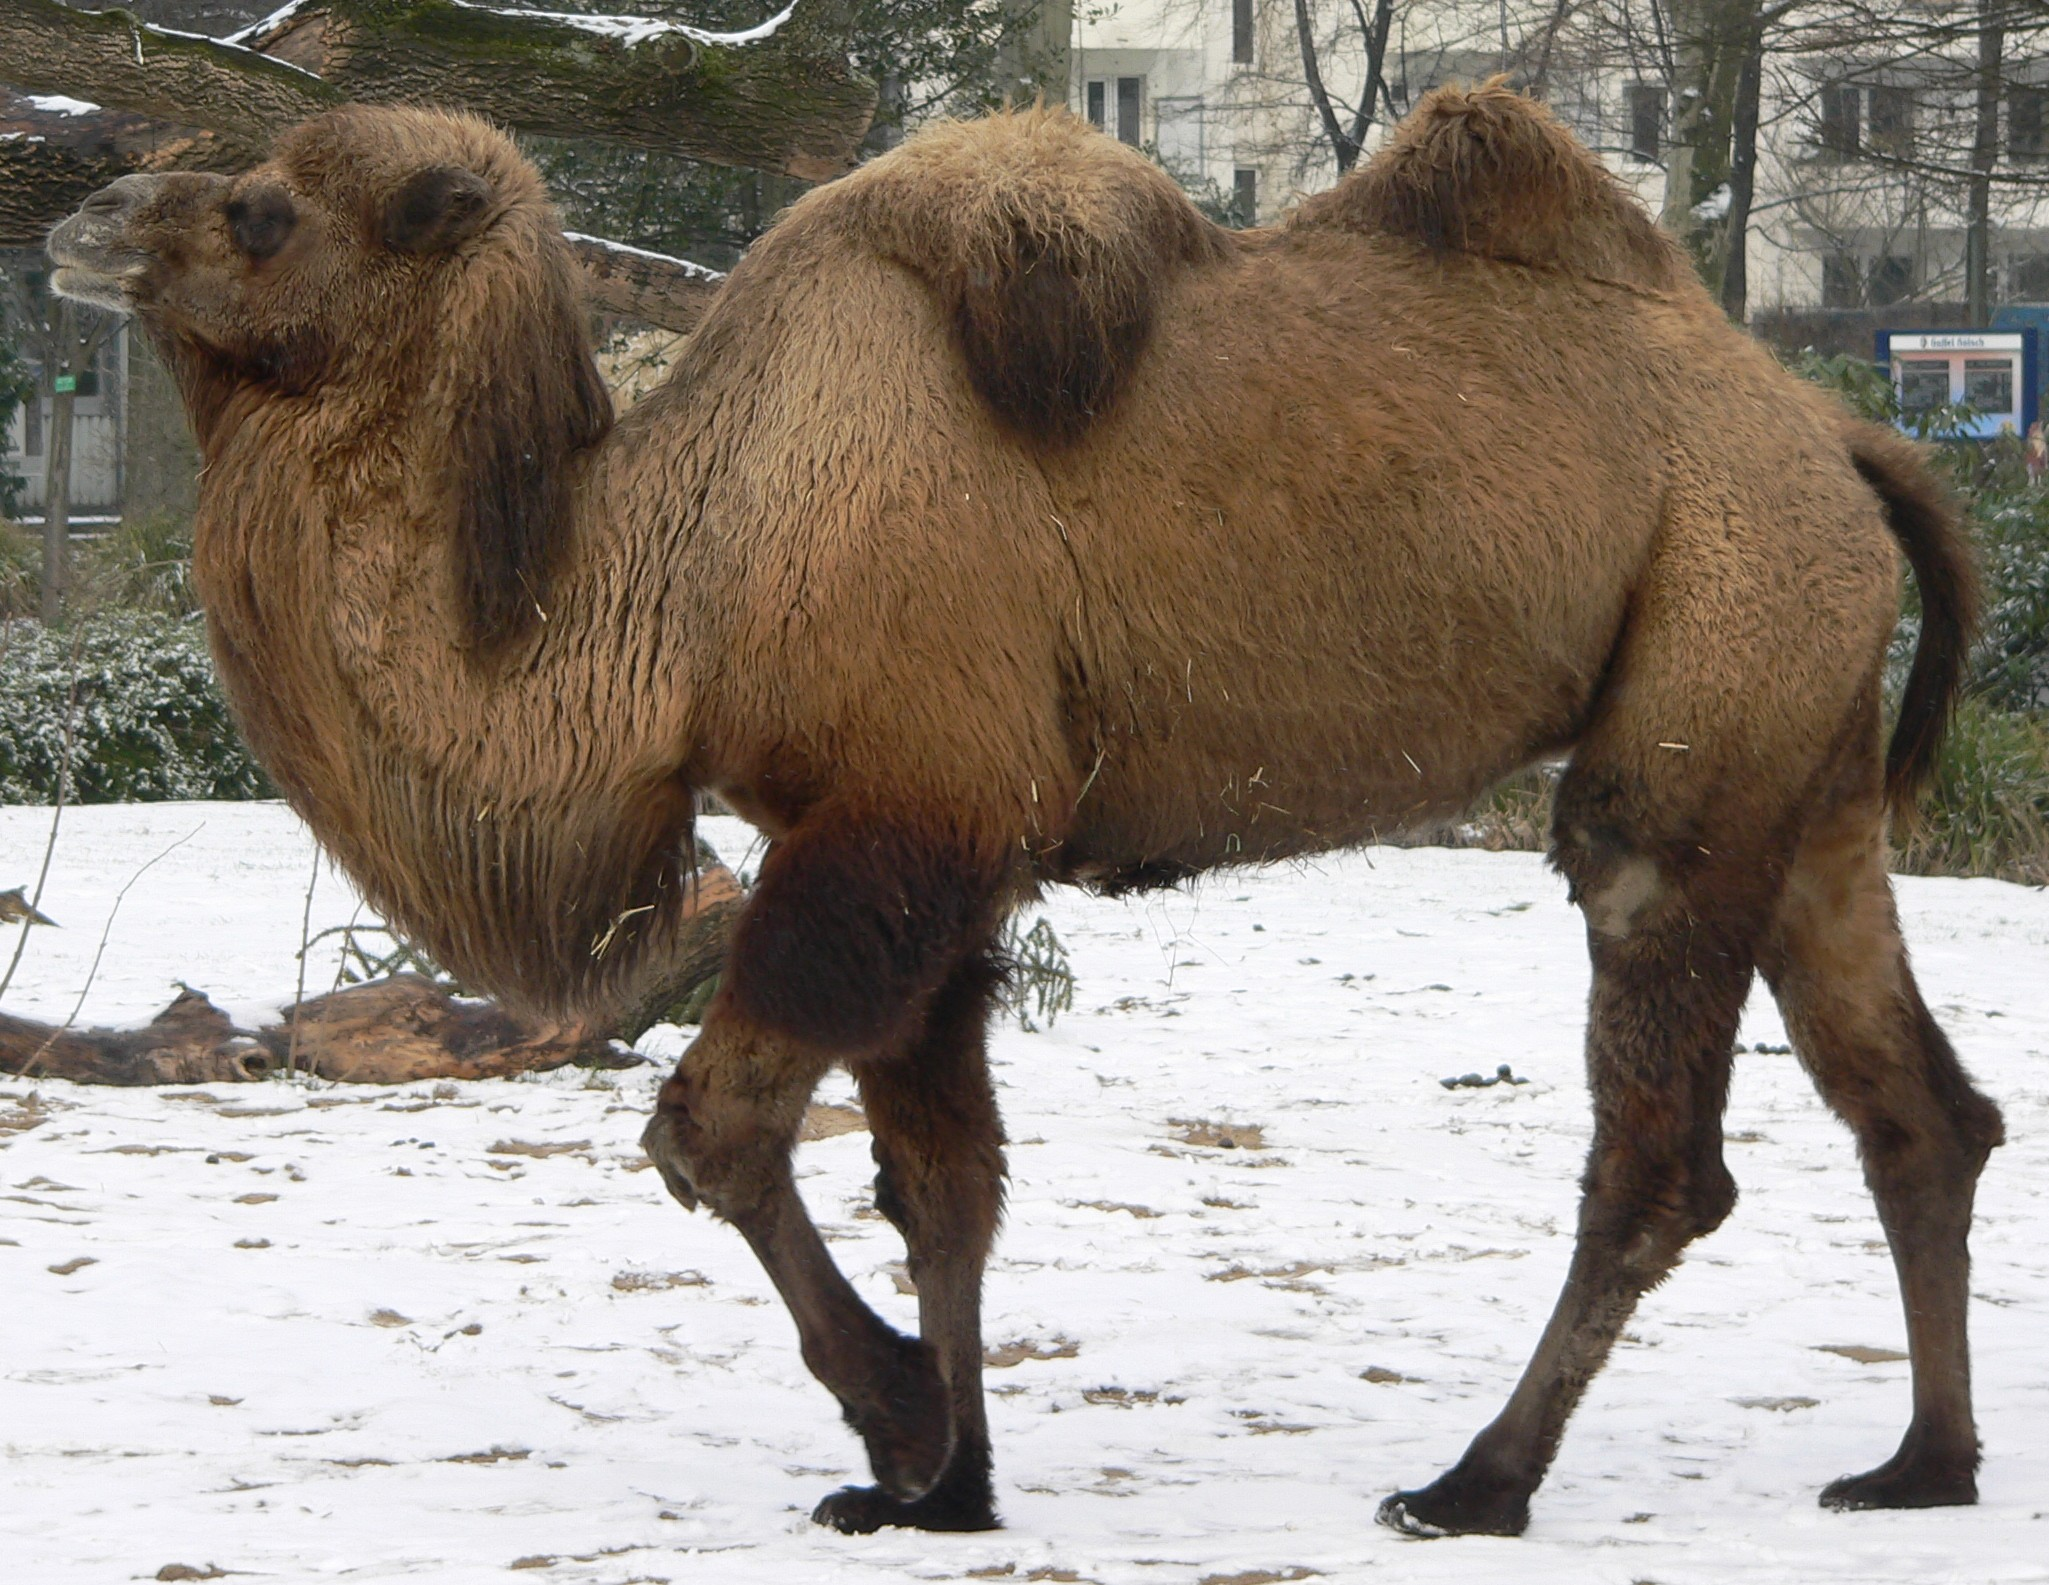 http://upload.wikimedia.org/wikipedia/commons/6/64/Camel_seitlich_trabend.jpg?uselang=fr